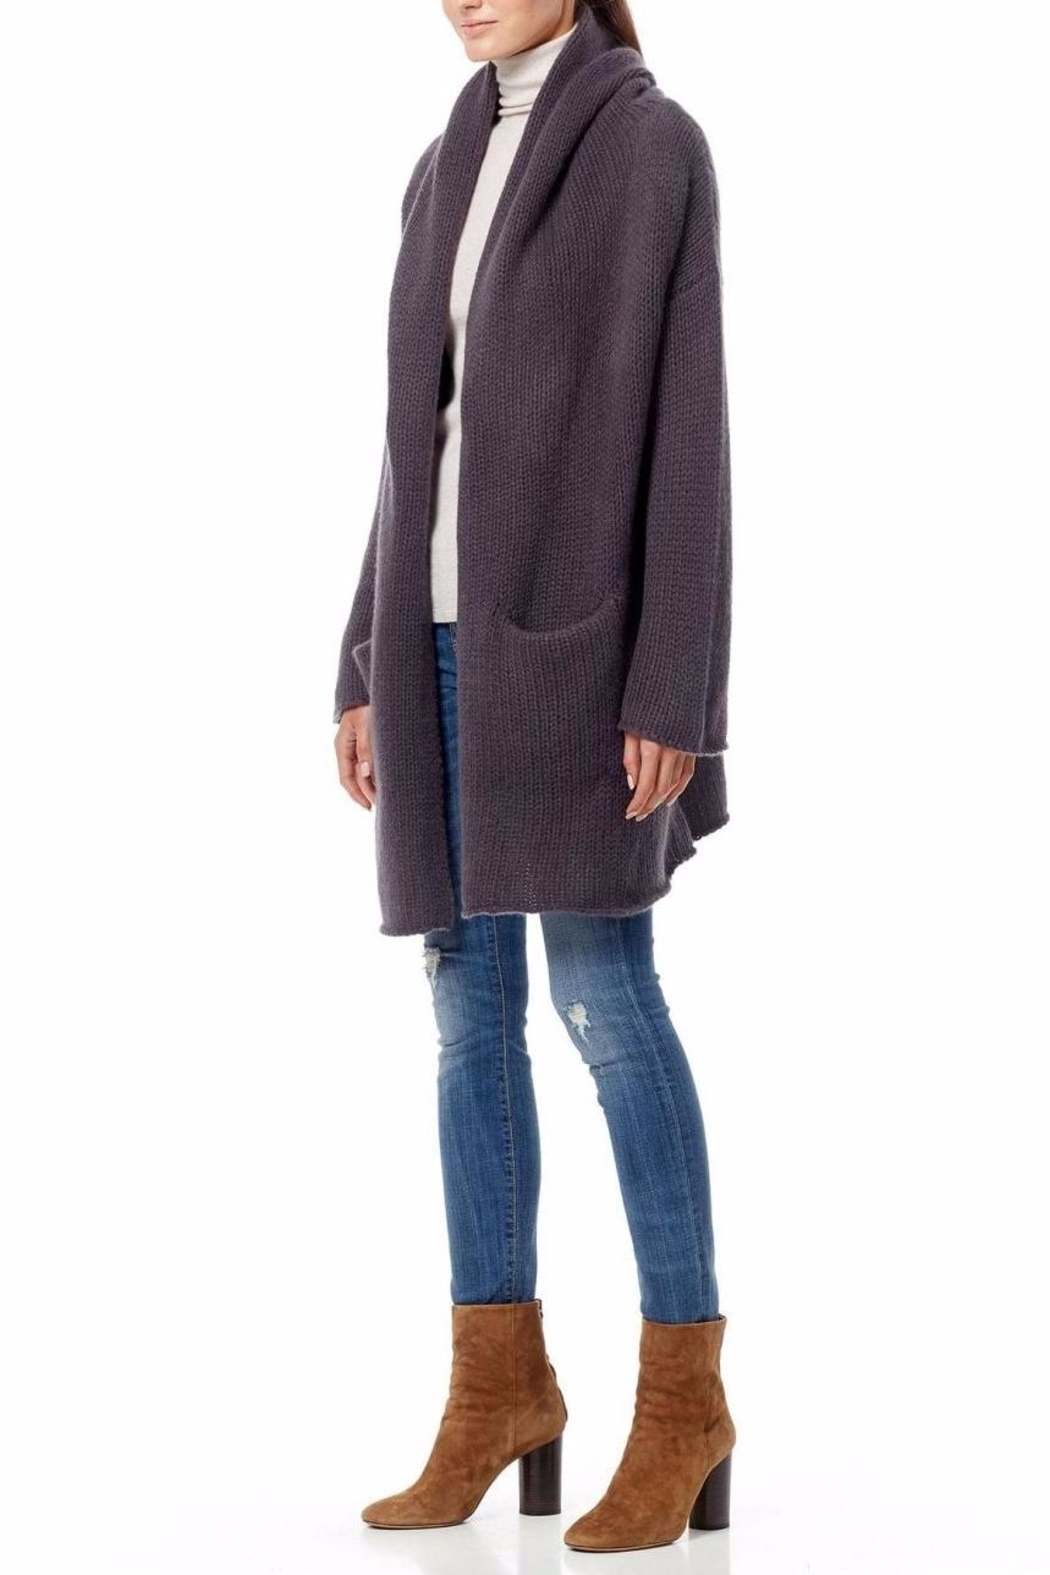 360 Cashmere Chunky Knit Cardigan - Front Full Image